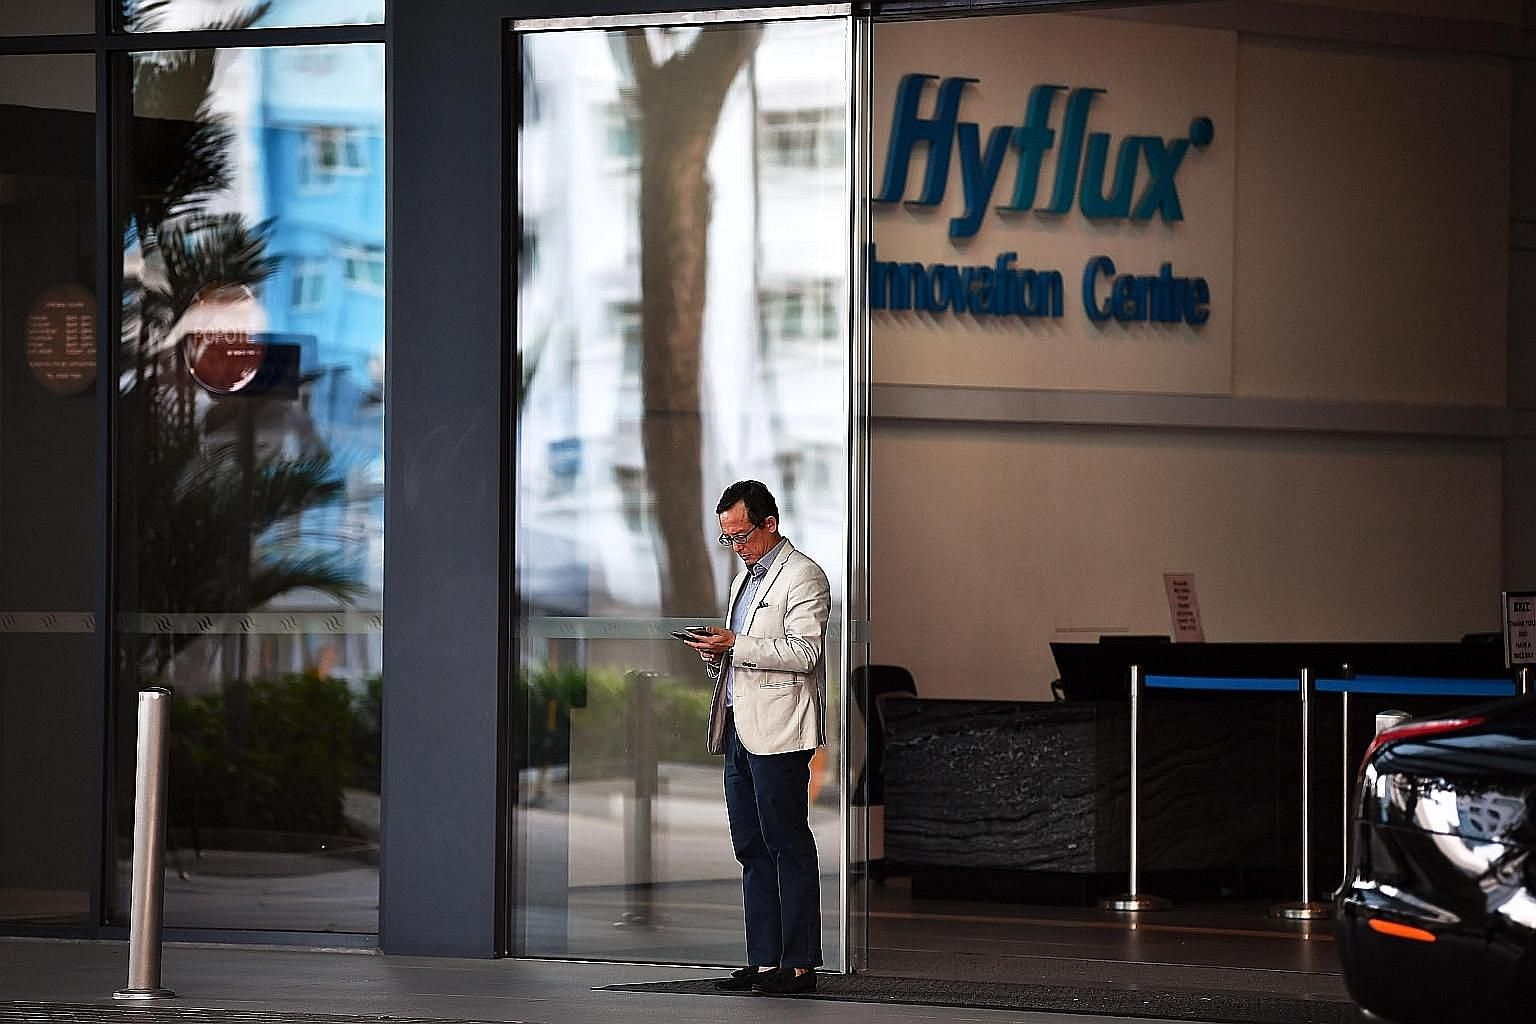 One of the key takeaways from the Hyflux fiasco is that no sector is immune to financial troubles, says S&P. Another is that situations can evolve quickly for companies with narrow or uncertain earnings quality.